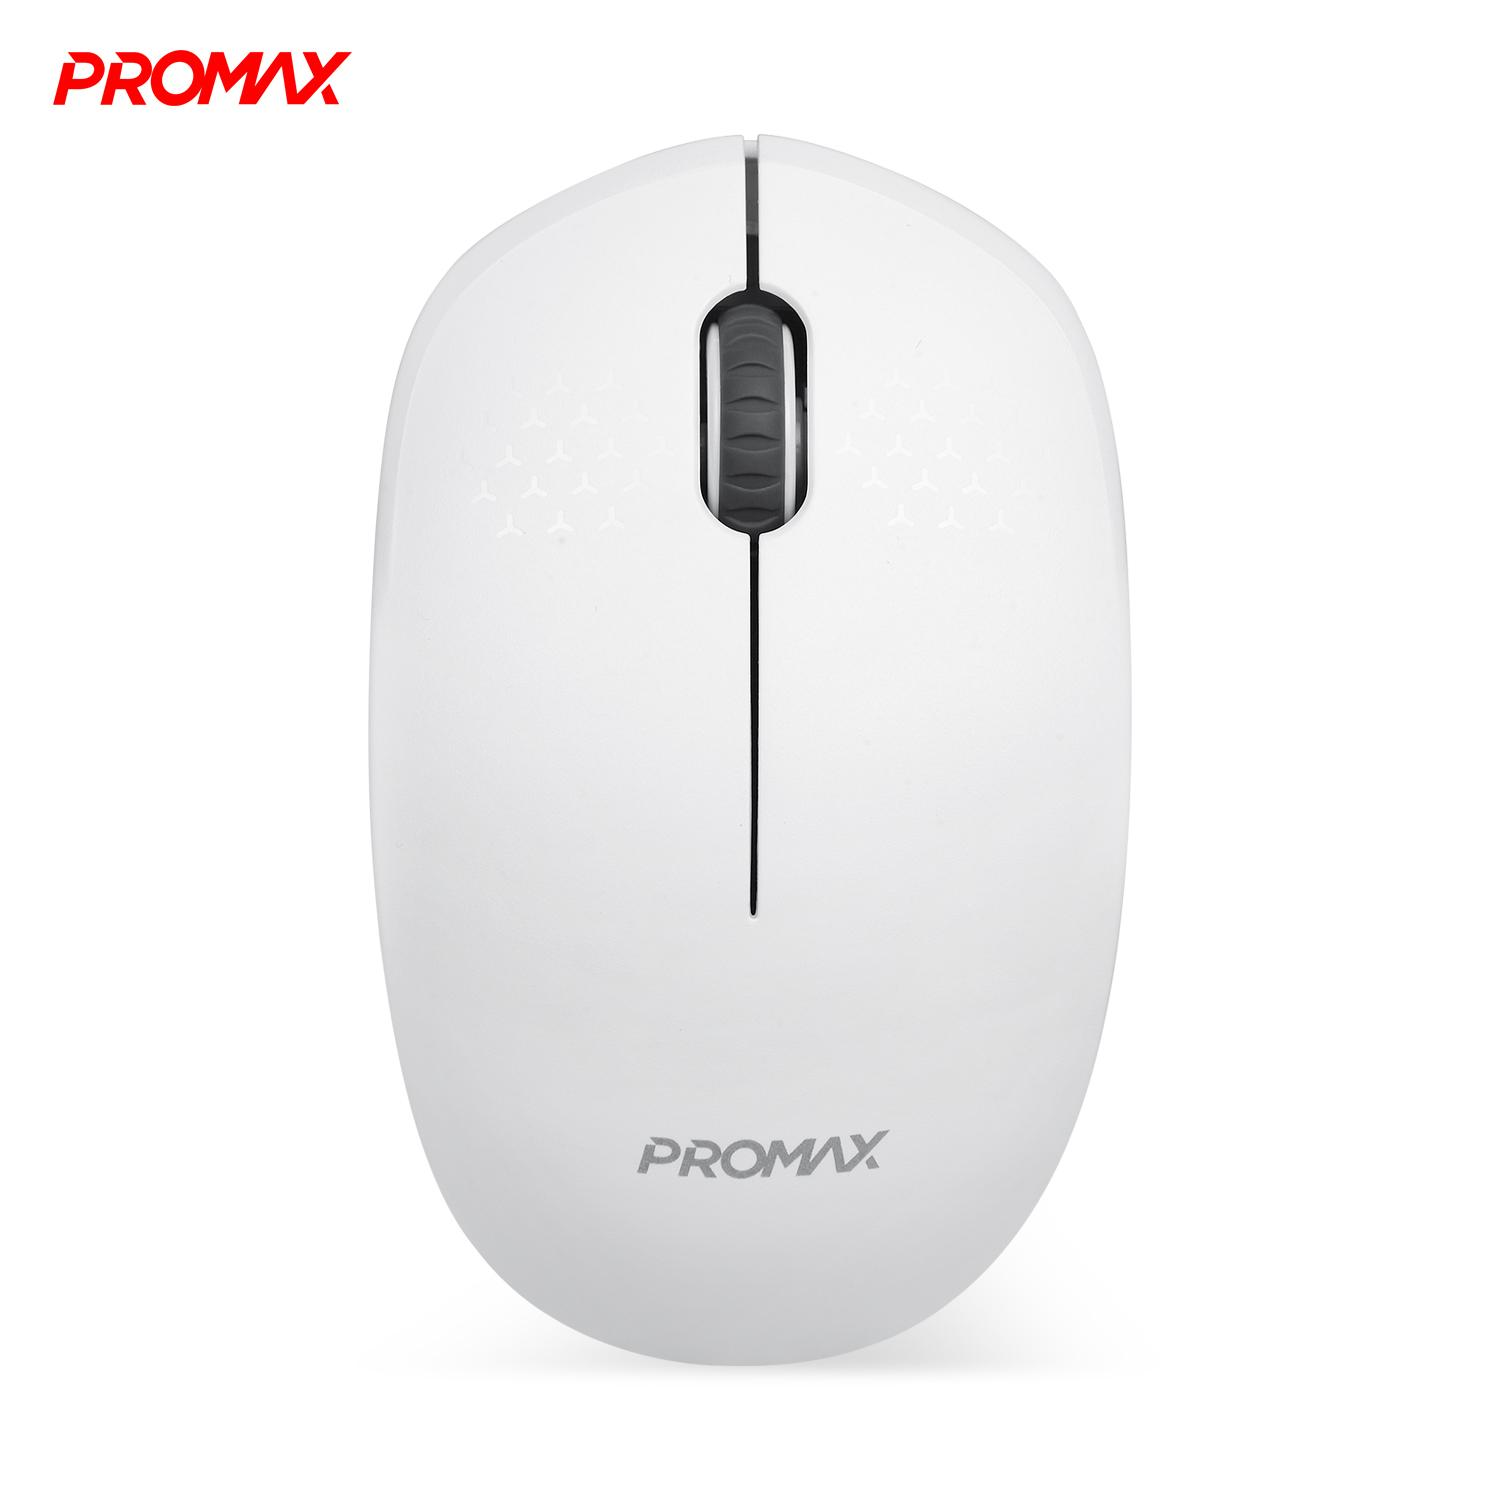 Promax M5 Power Saving Wireless Mouse With Nano Receiver